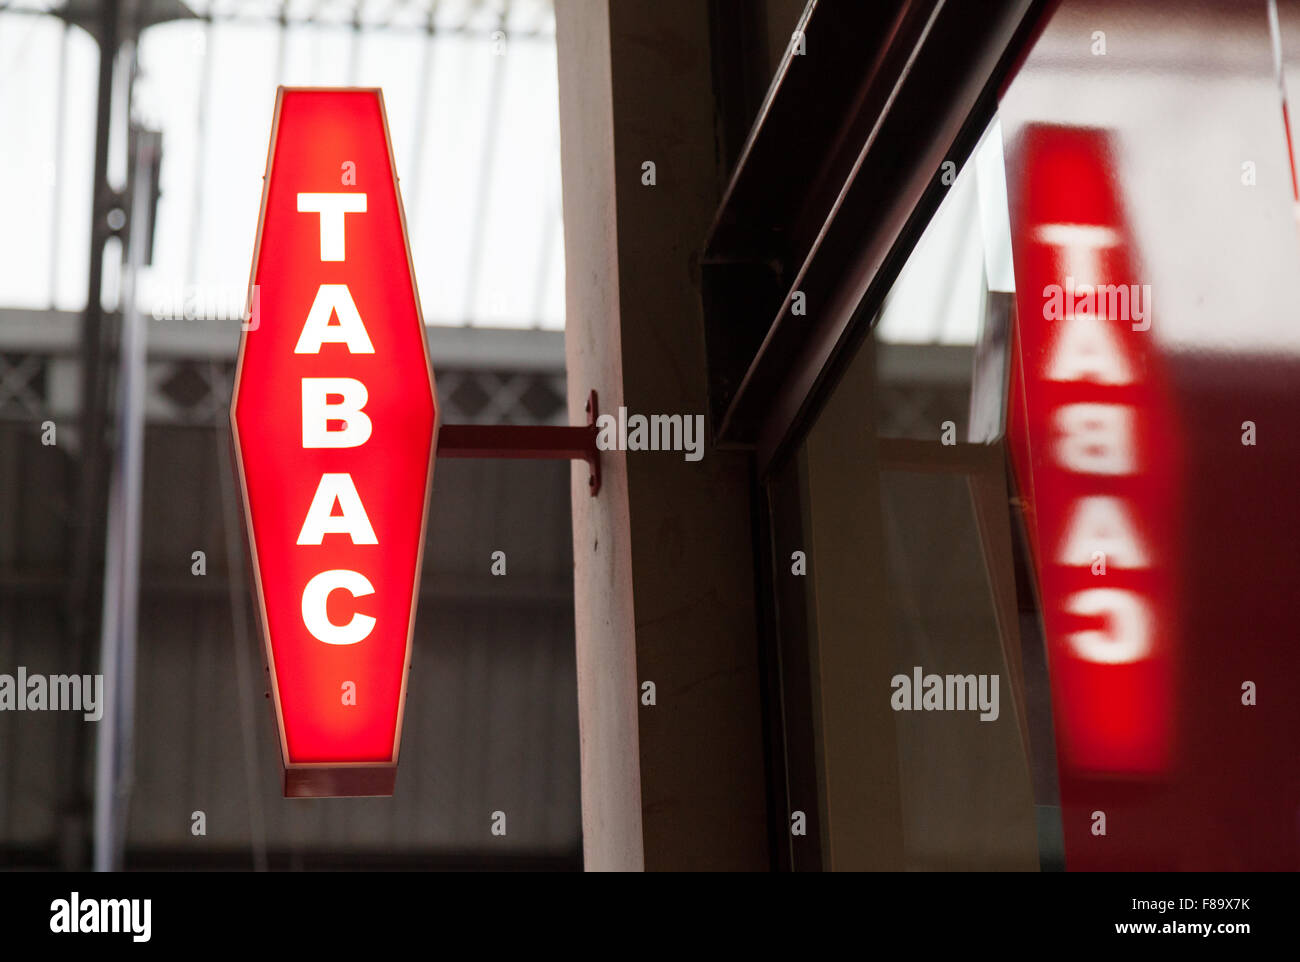 Bureau de Tabac shop sign,  Paris France Europe - Stock Image